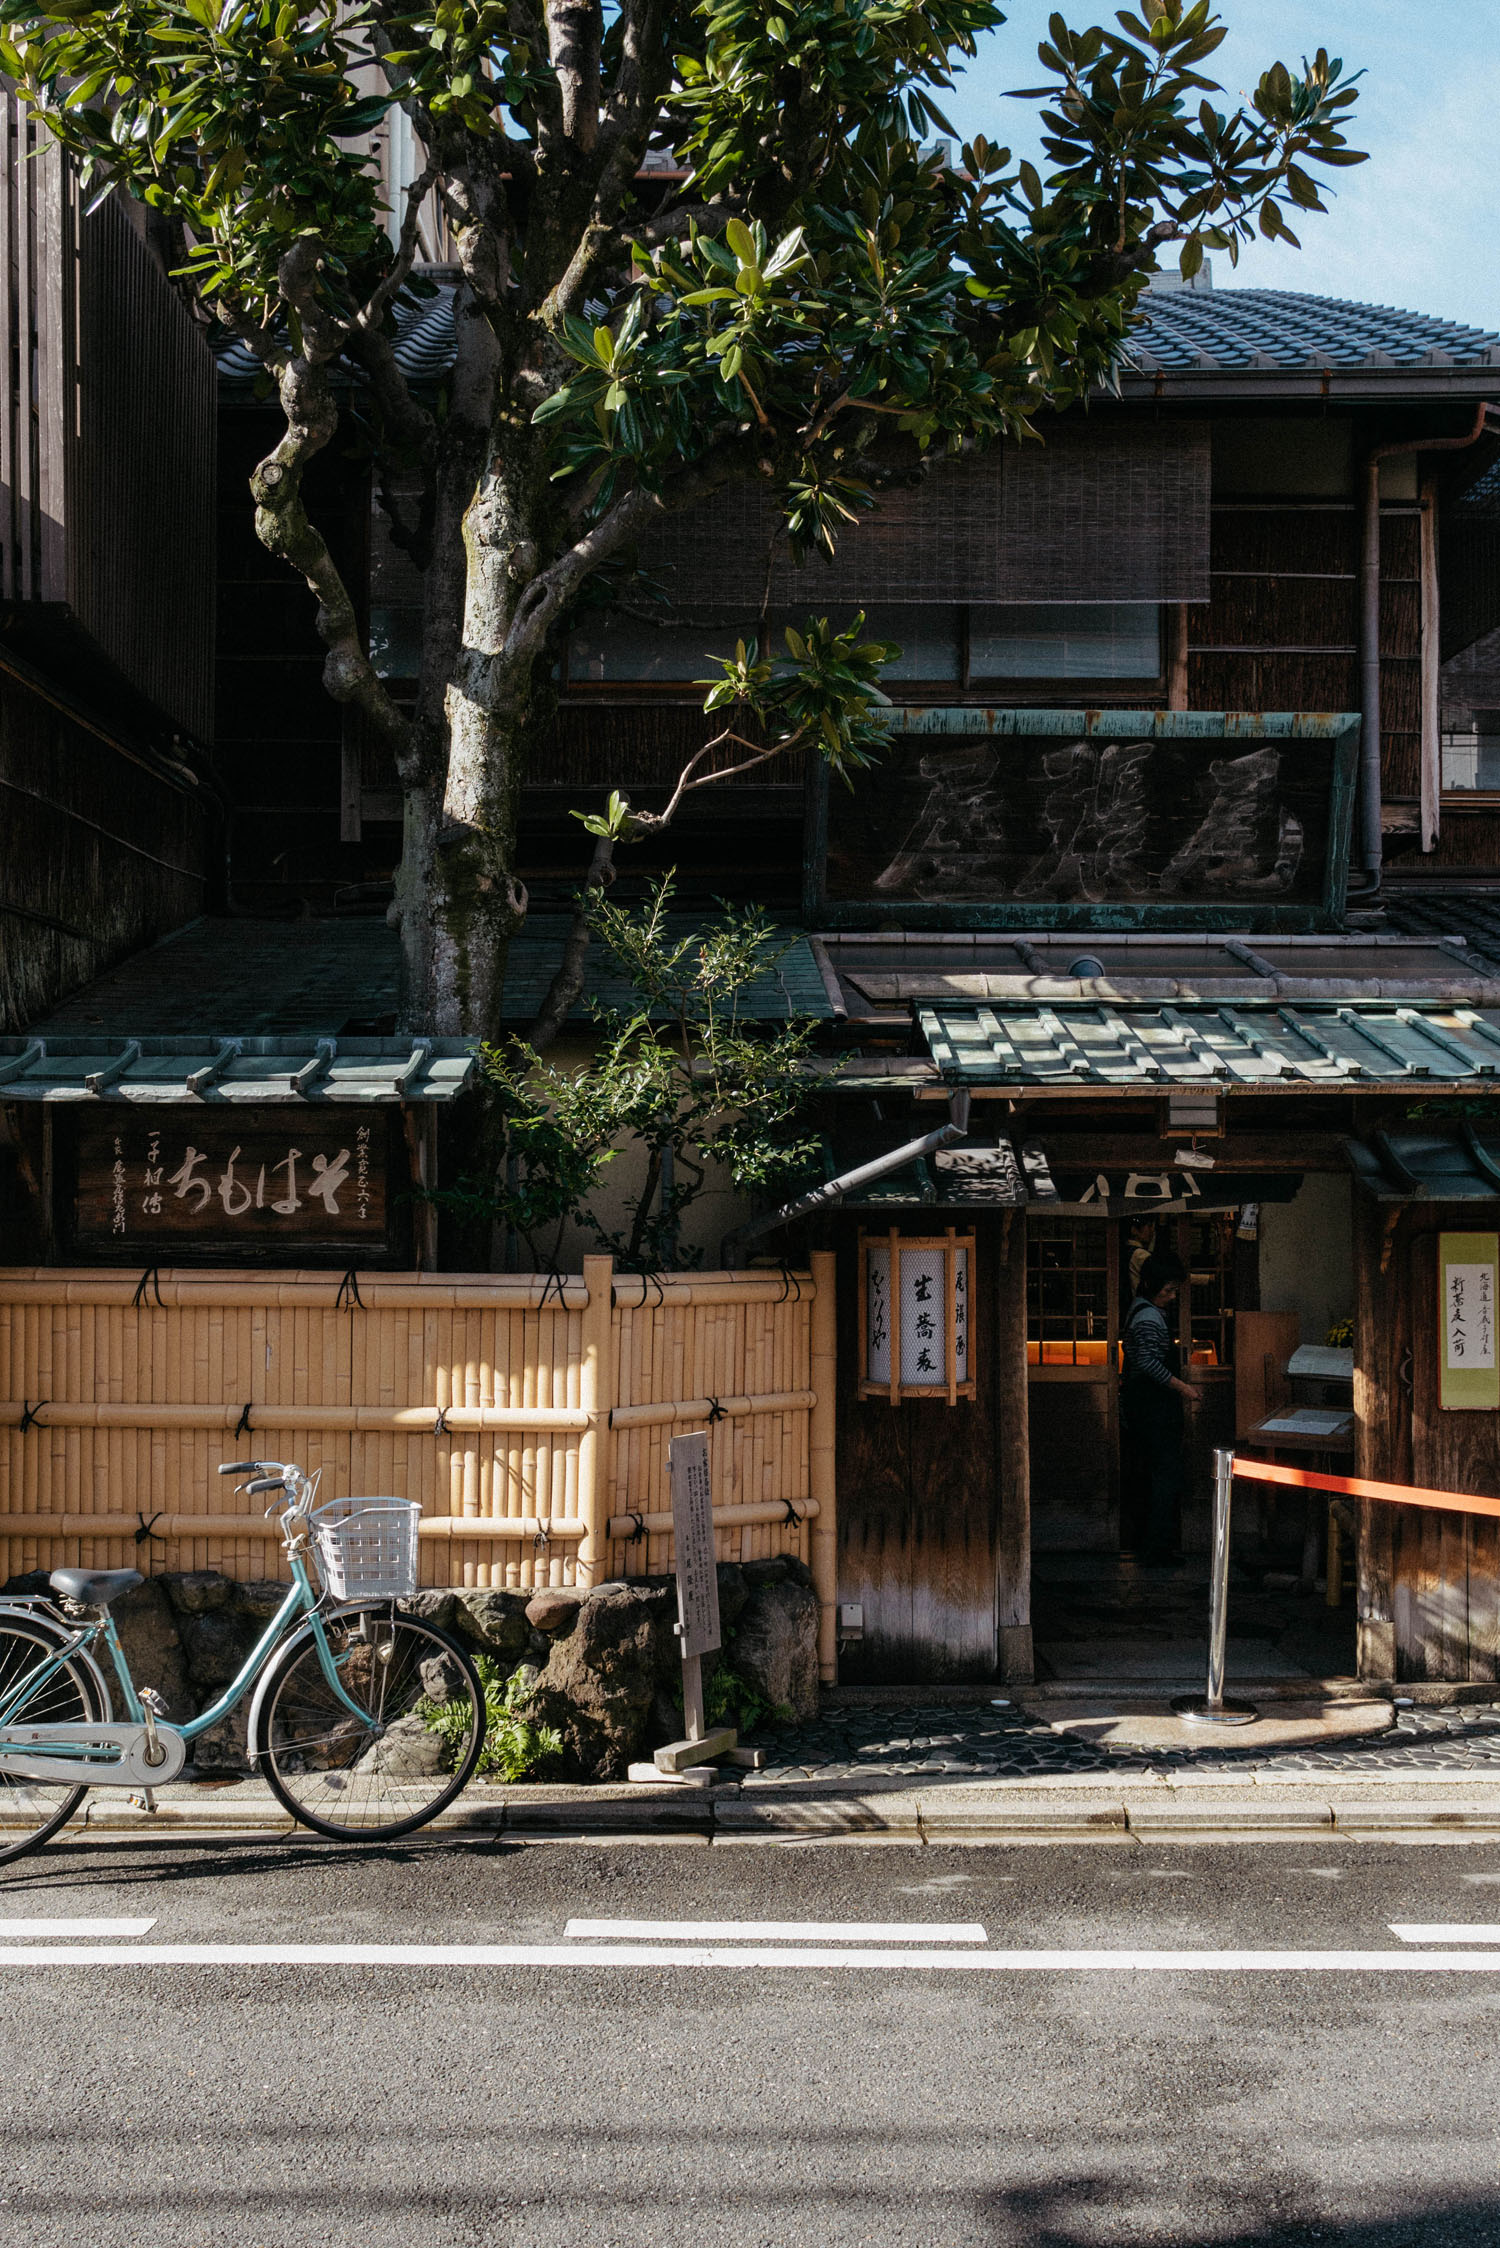 Oldest soba house in Kyoto (553-years-old),  Honke Owariya   Heard there is usually a line, but arrived at 11am (opening time) and we were seated right away.